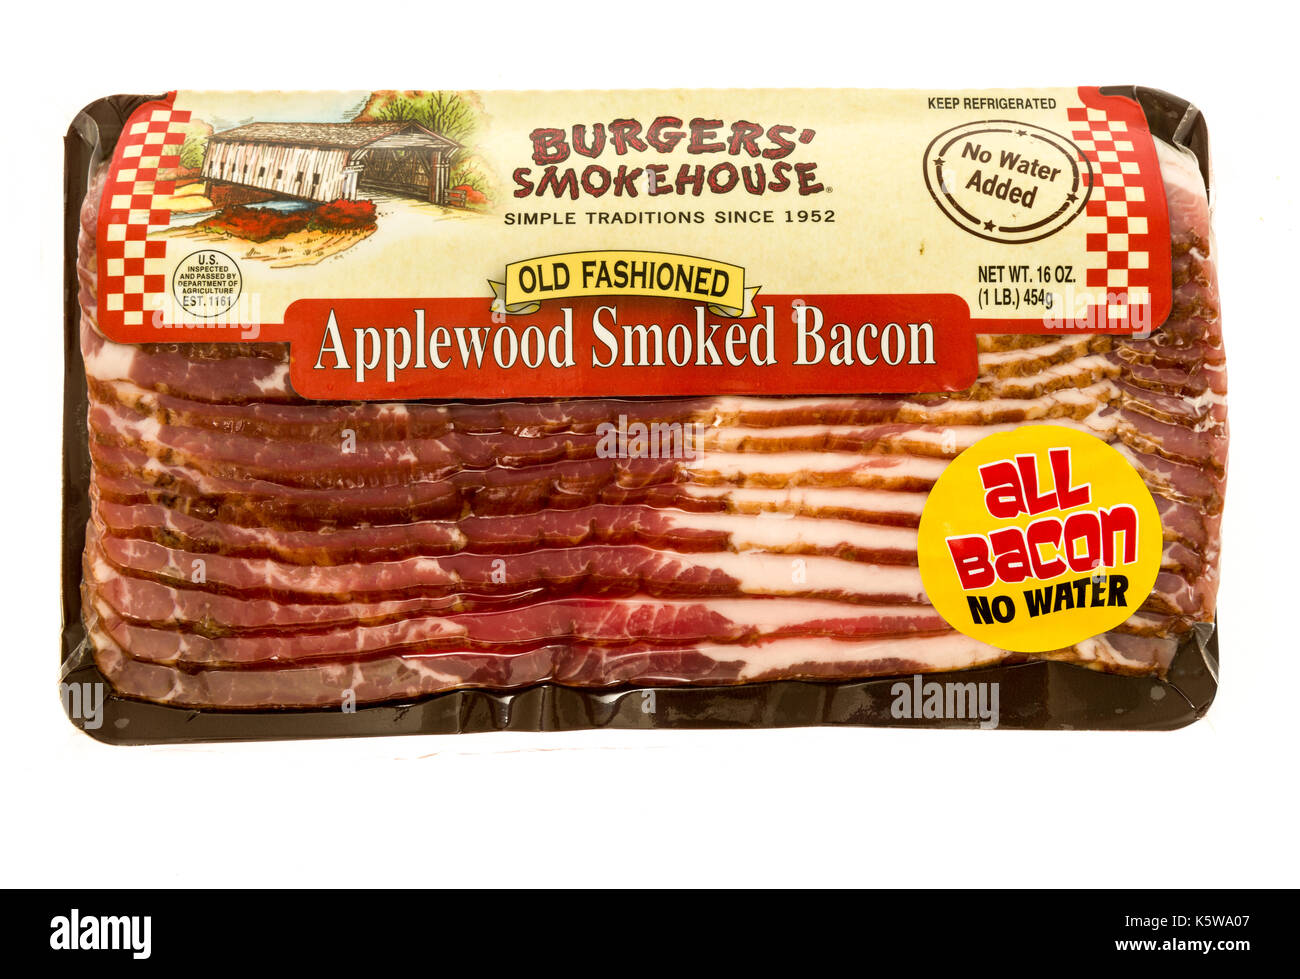 Why aren't bacon packages resealable? | ResetEra